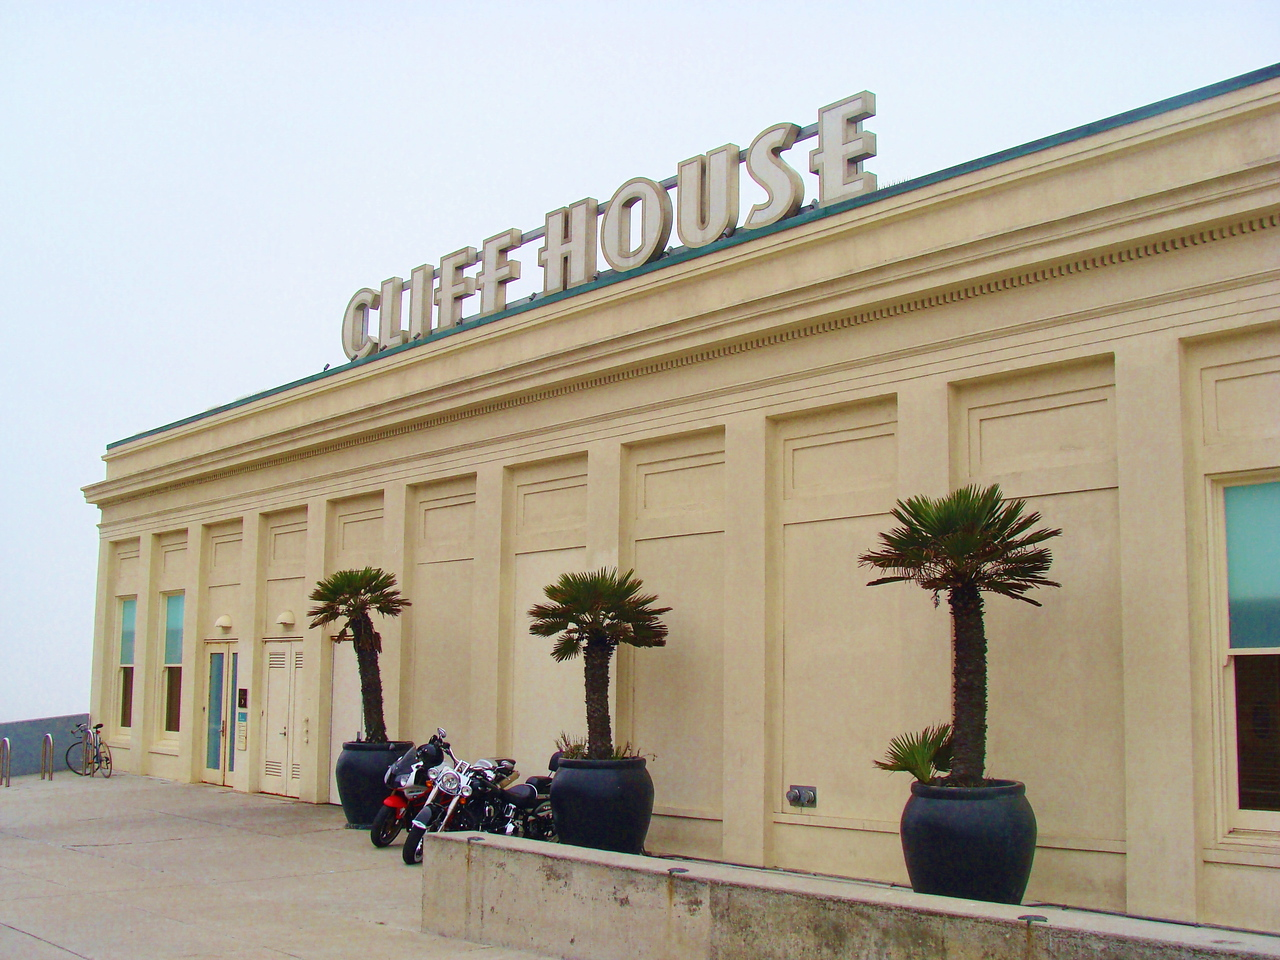 Cliff House Restaurant